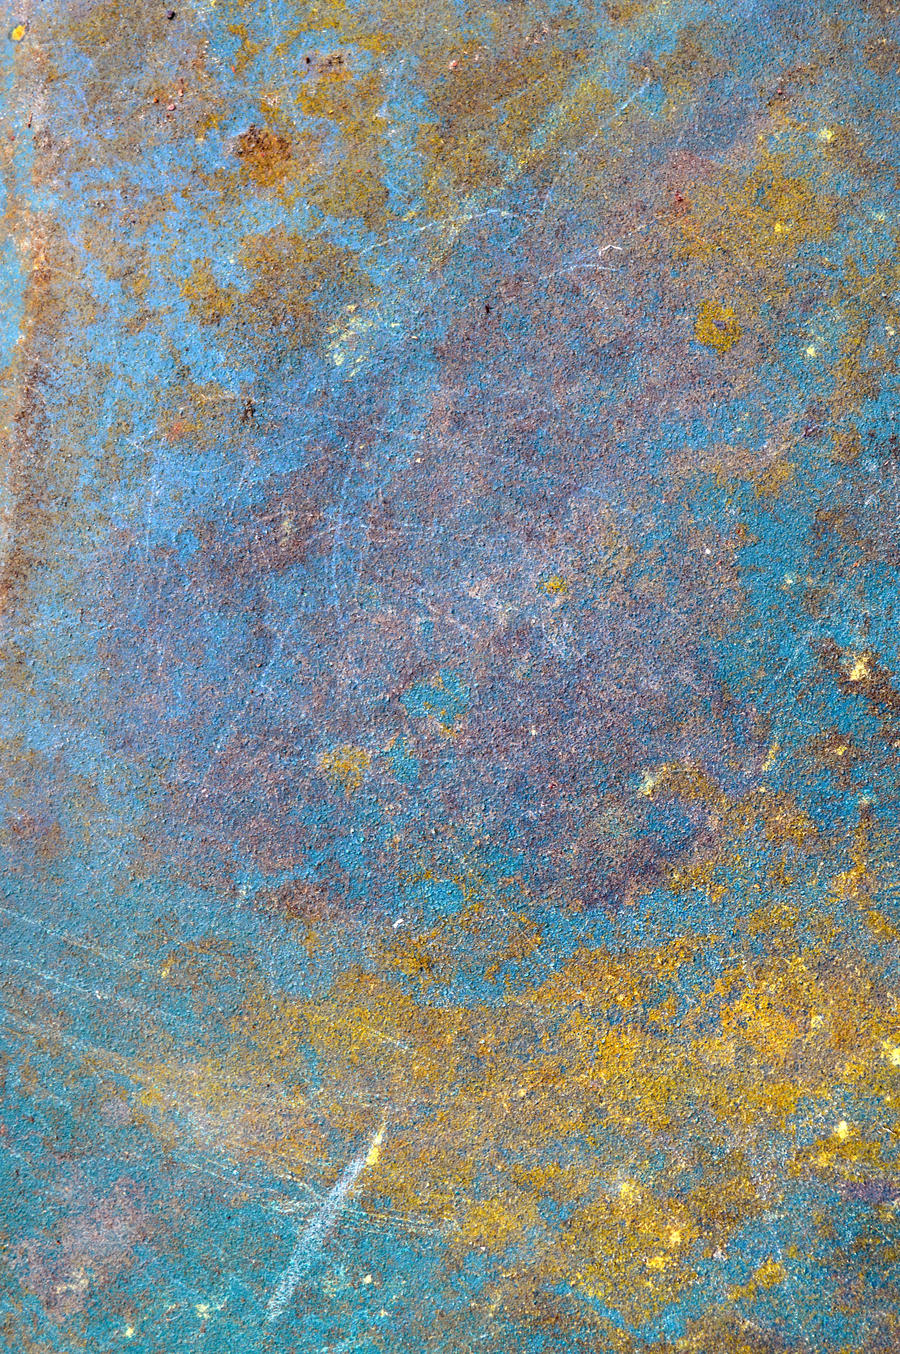 Which Abstract Expressionist Painting Worked In The Color Field Manner